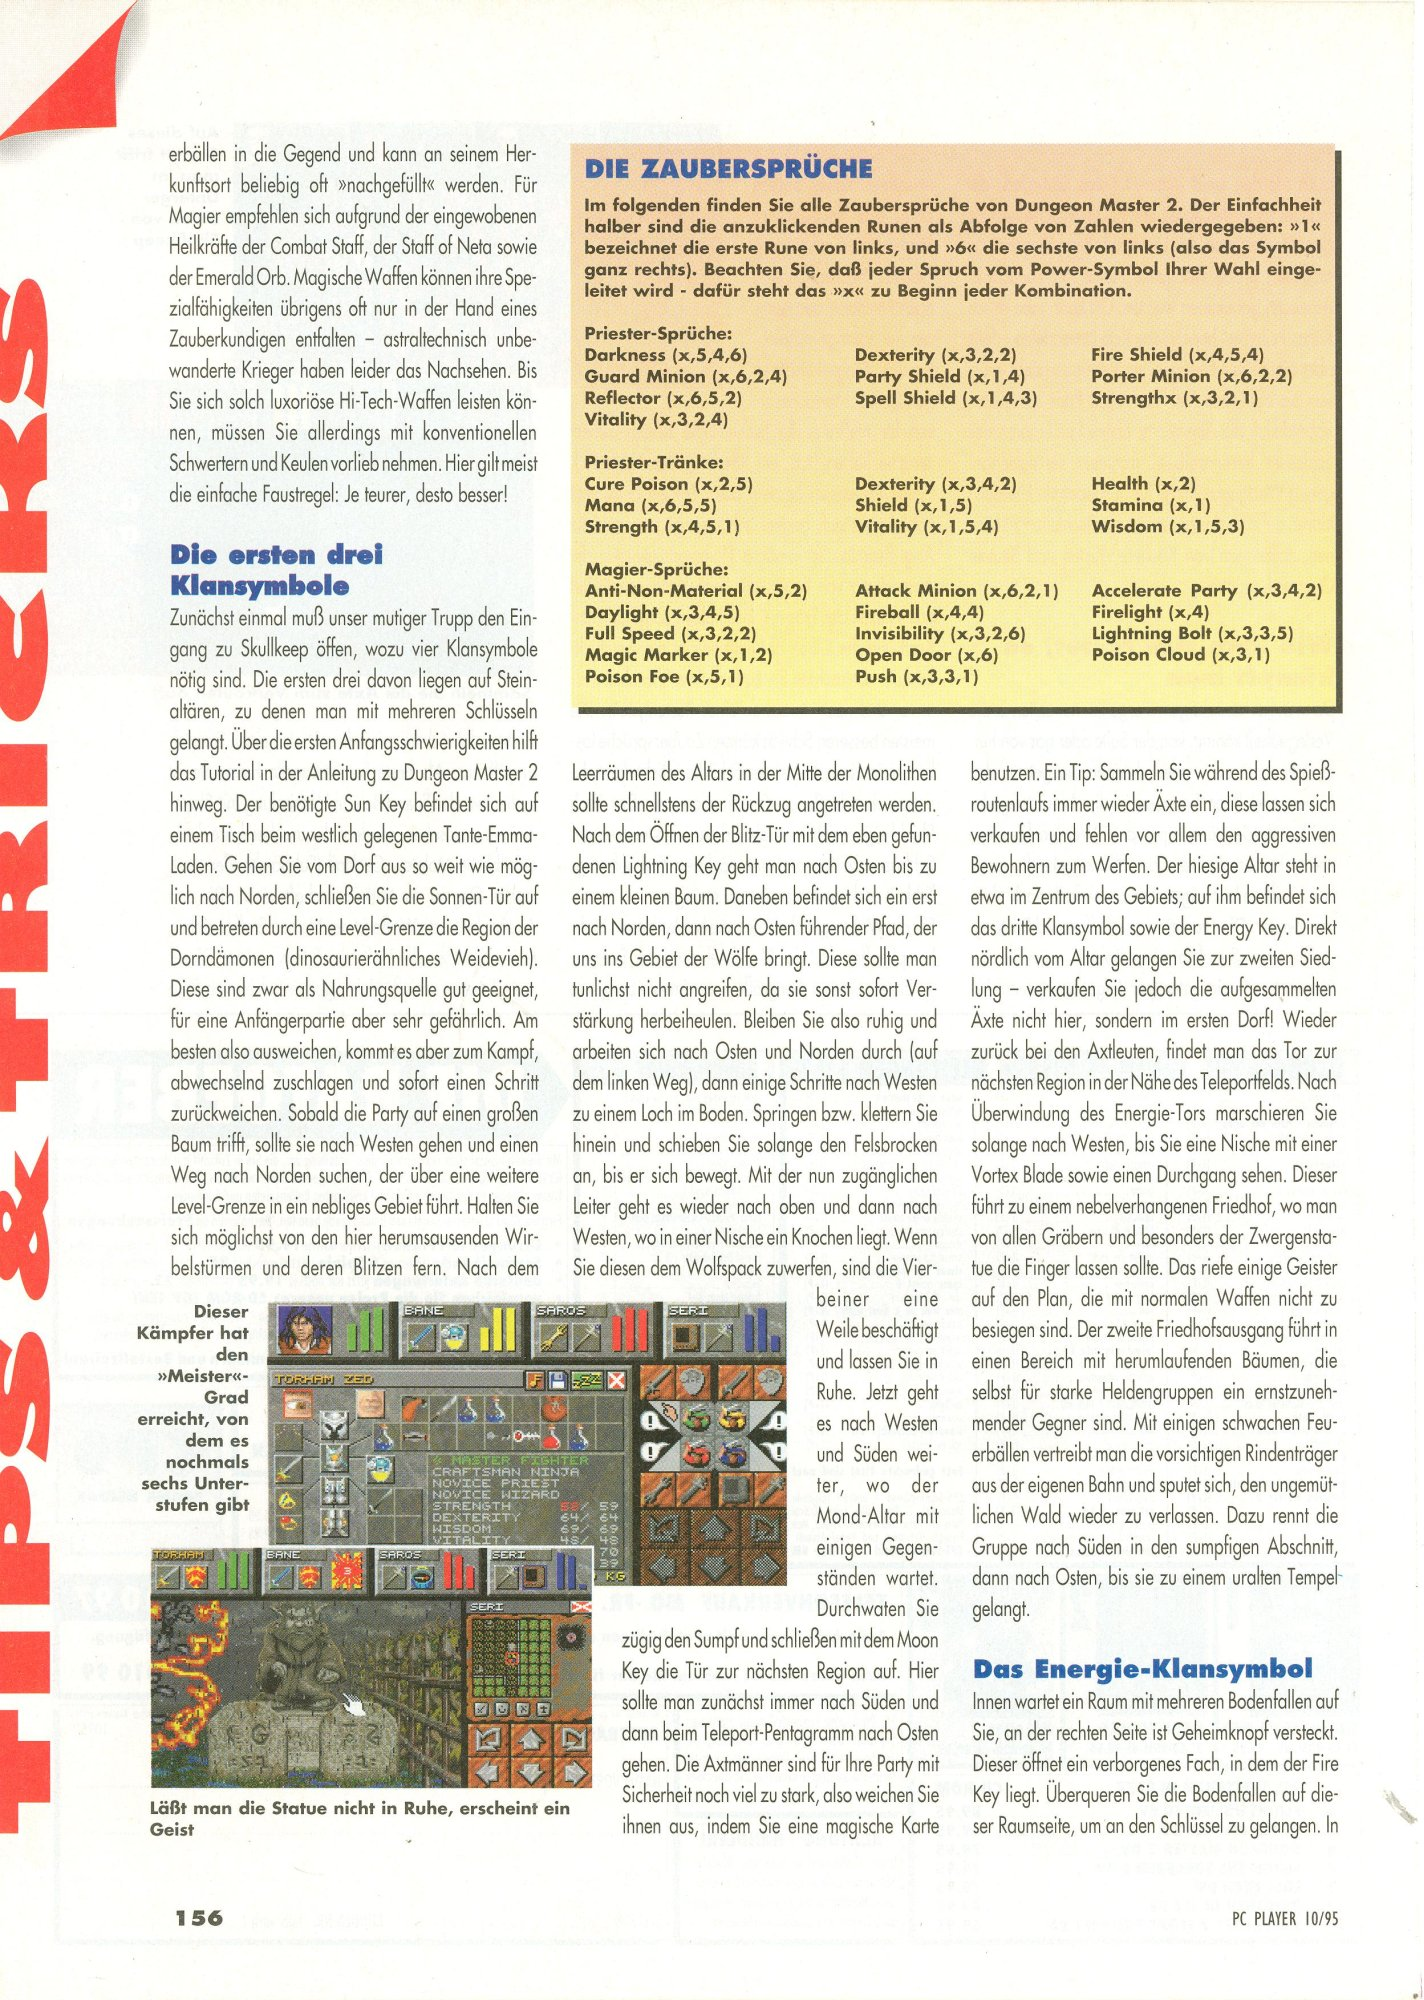 Dungeon Master II for PC Guide published in German magazine 'PC Player', October 1995, Page 156